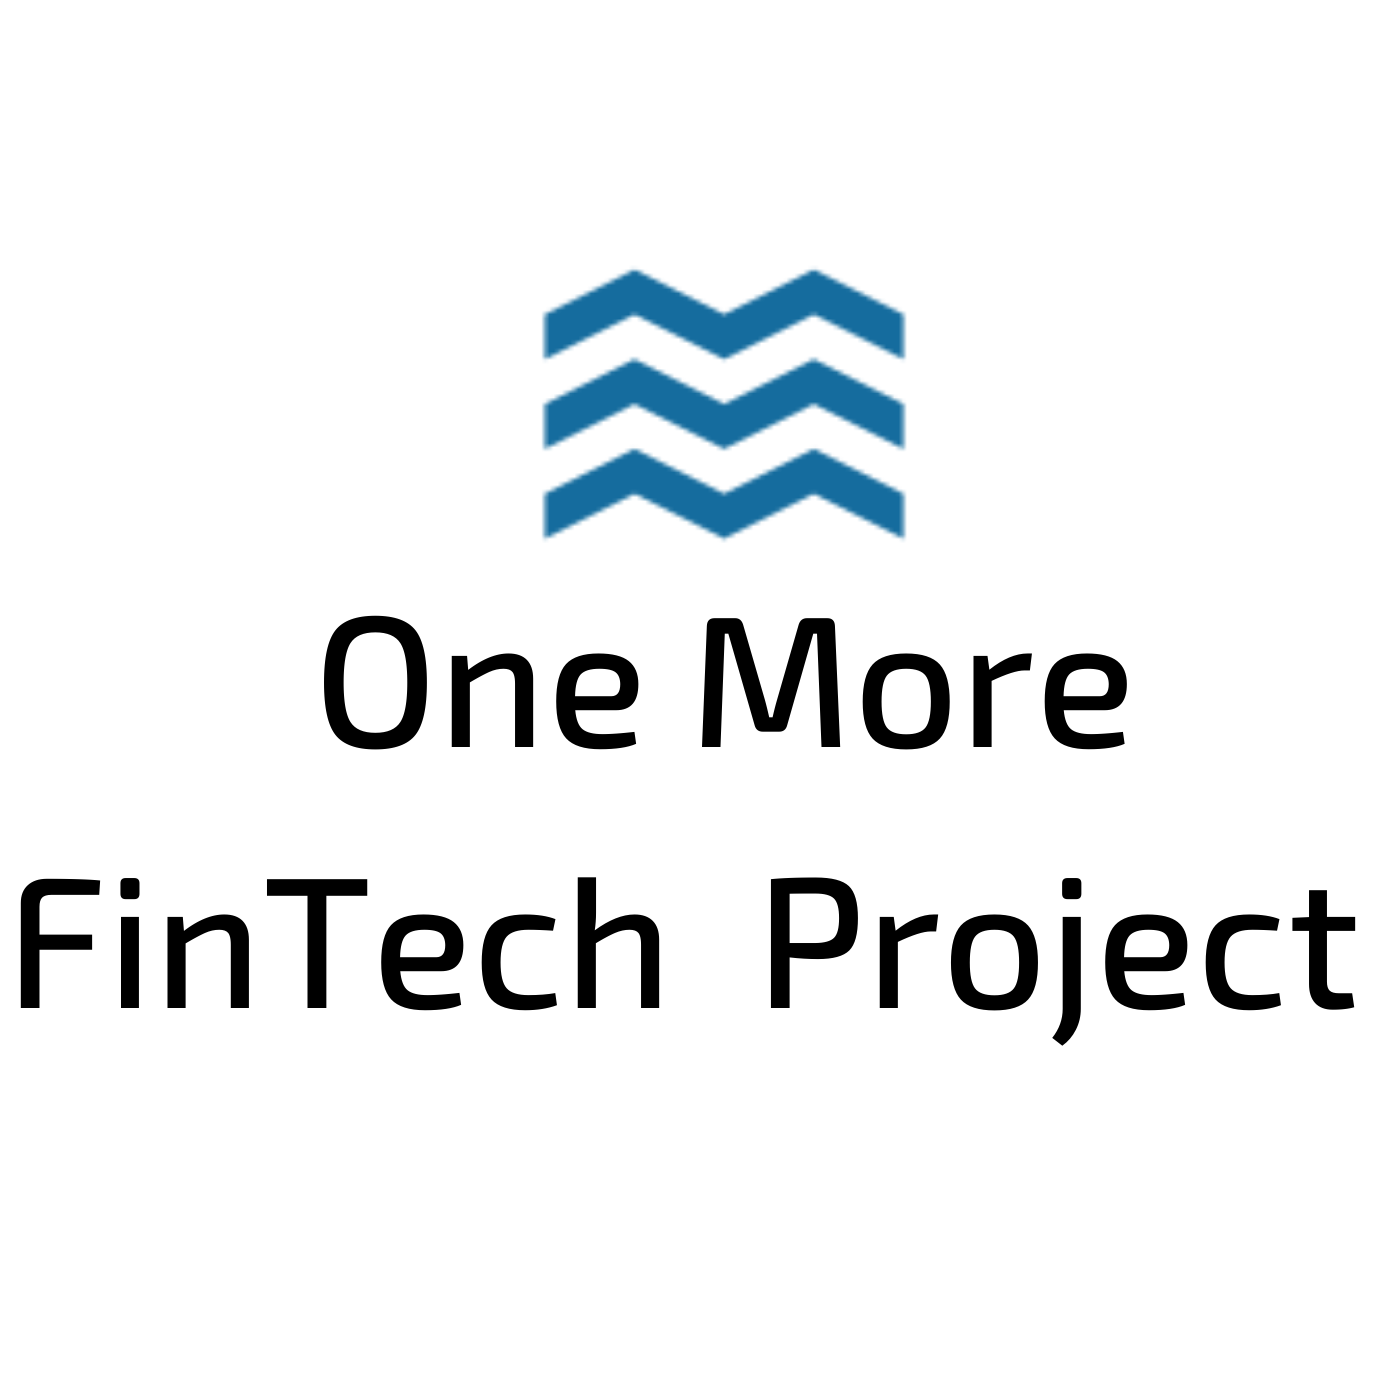 <p>One more FinTech Project </p>